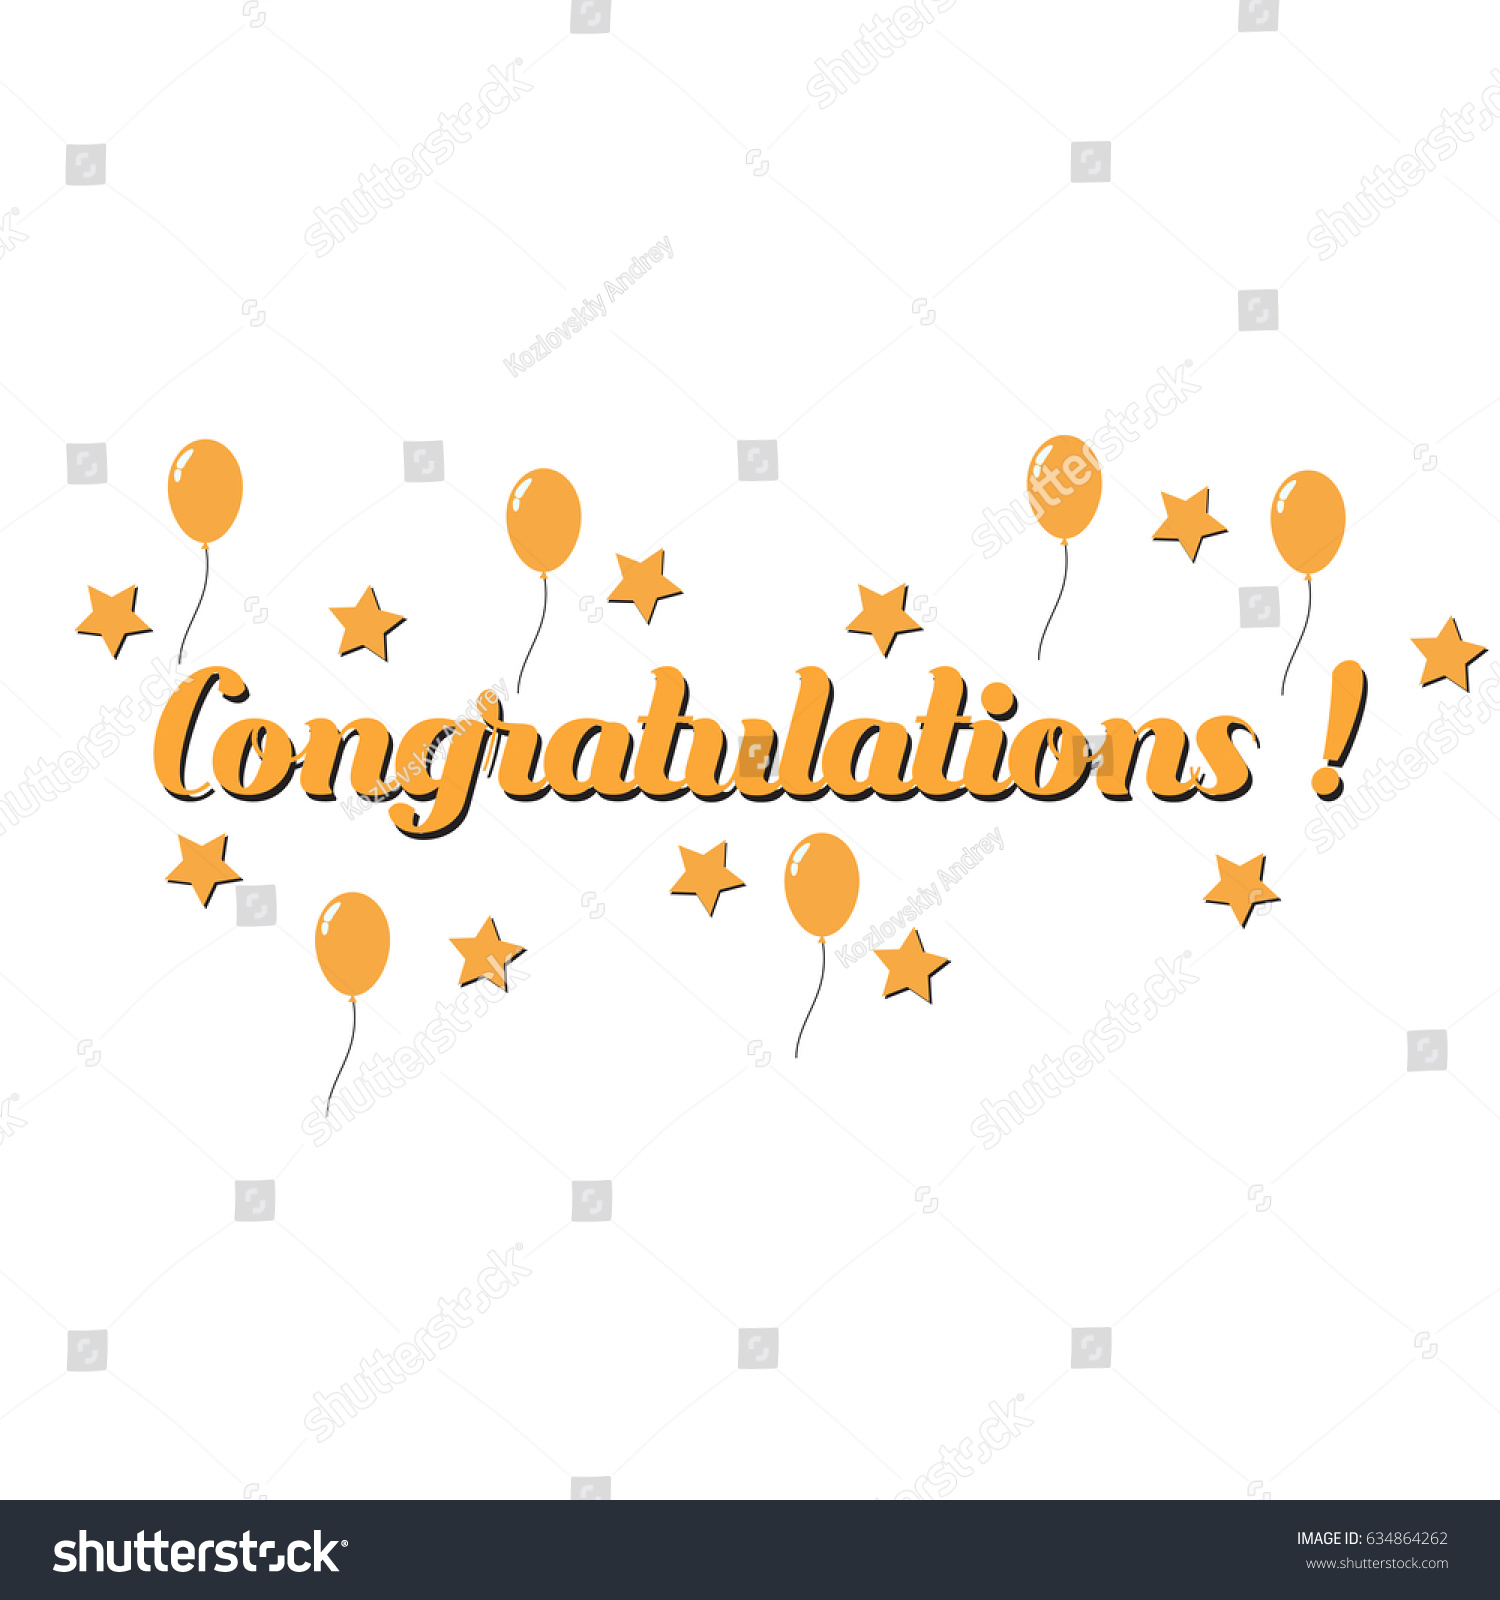 Congratulations template card banner flyer gift stock vector congratulations template for card banner flyer gift certificate alramifo Images